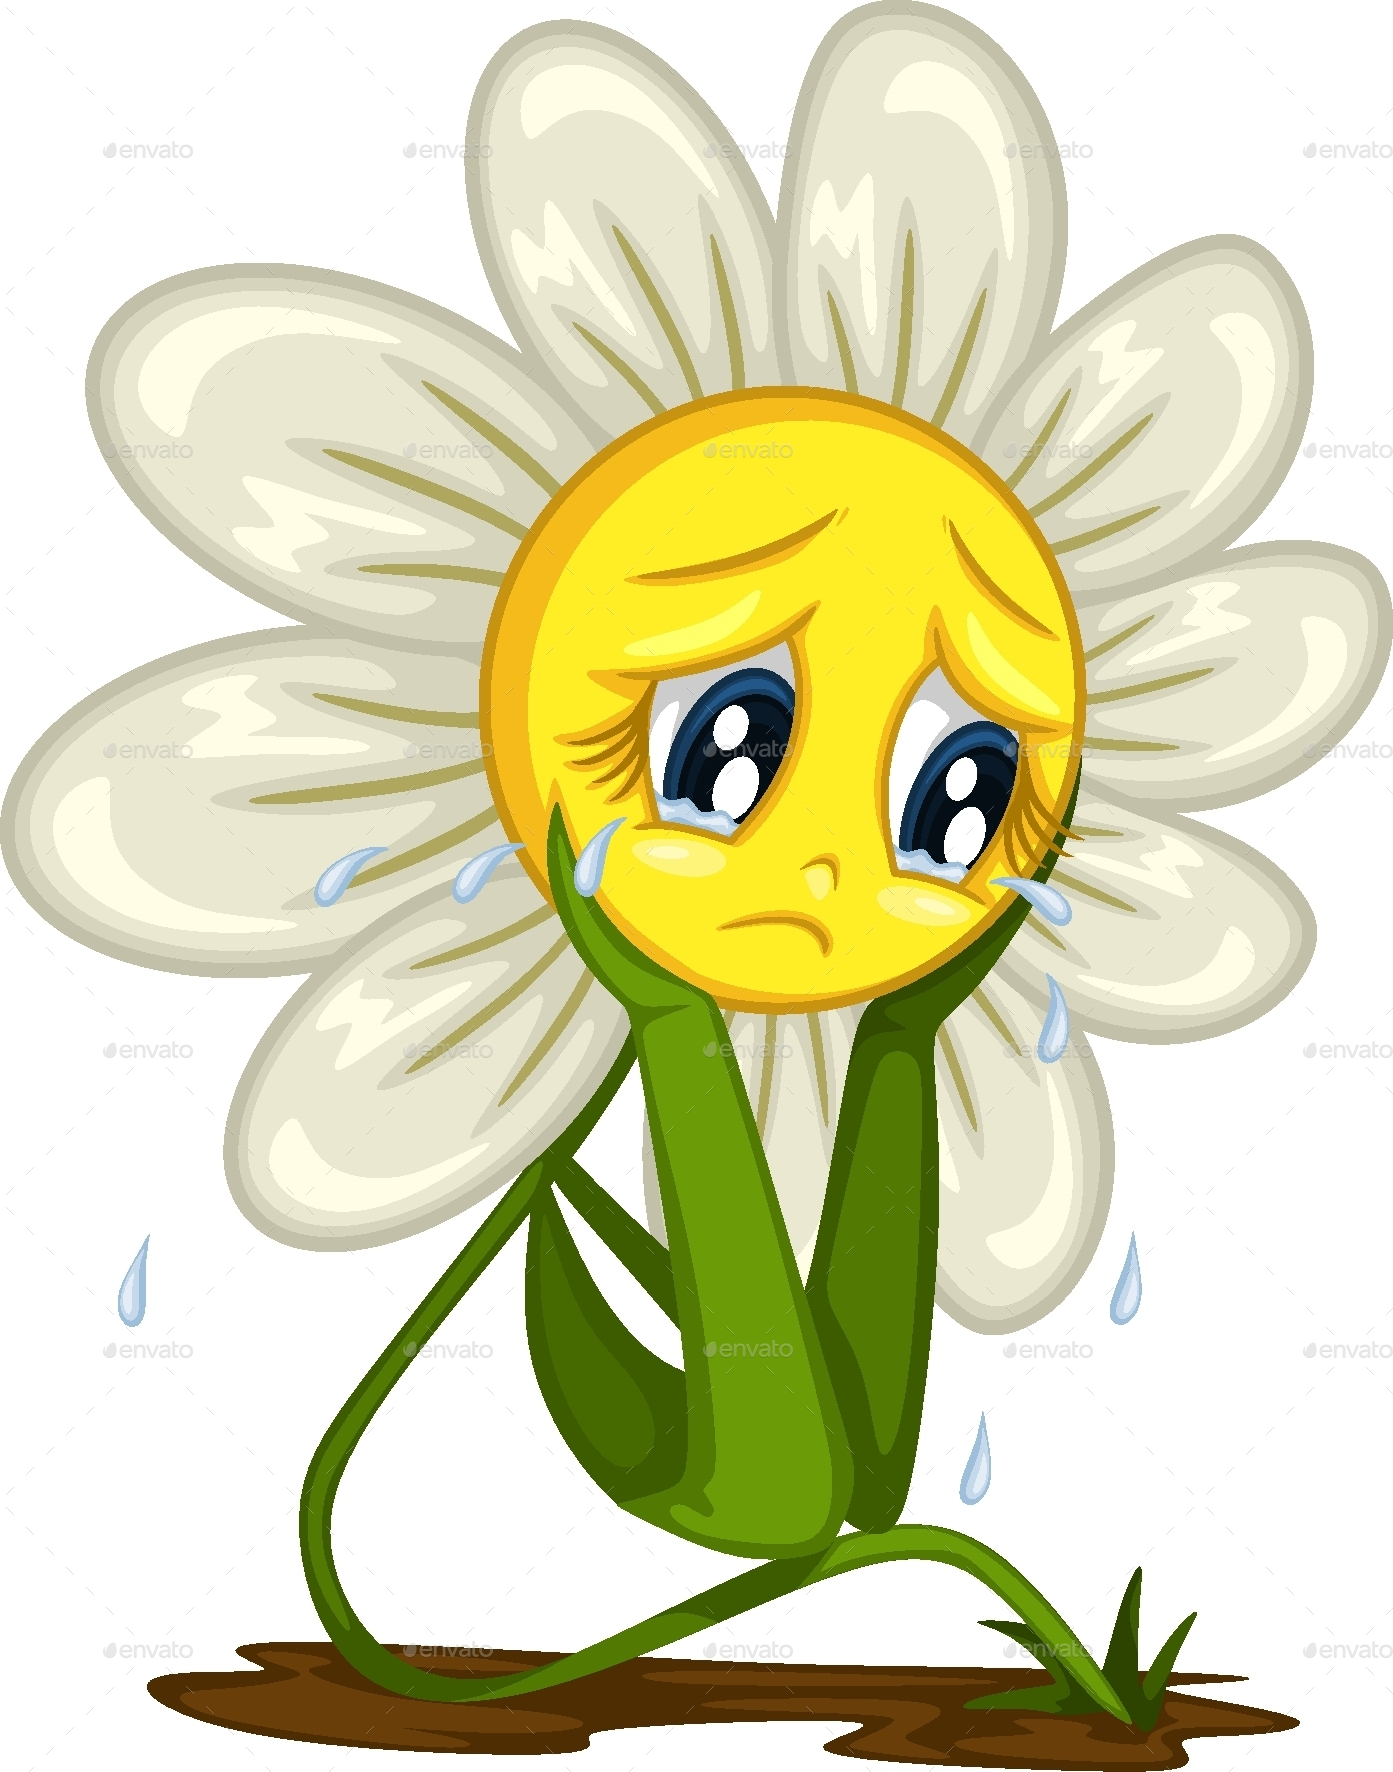 Cartoon daisy stickers for different situations by anniesart cartoon daisy stickers for different situations izmirmasajfo